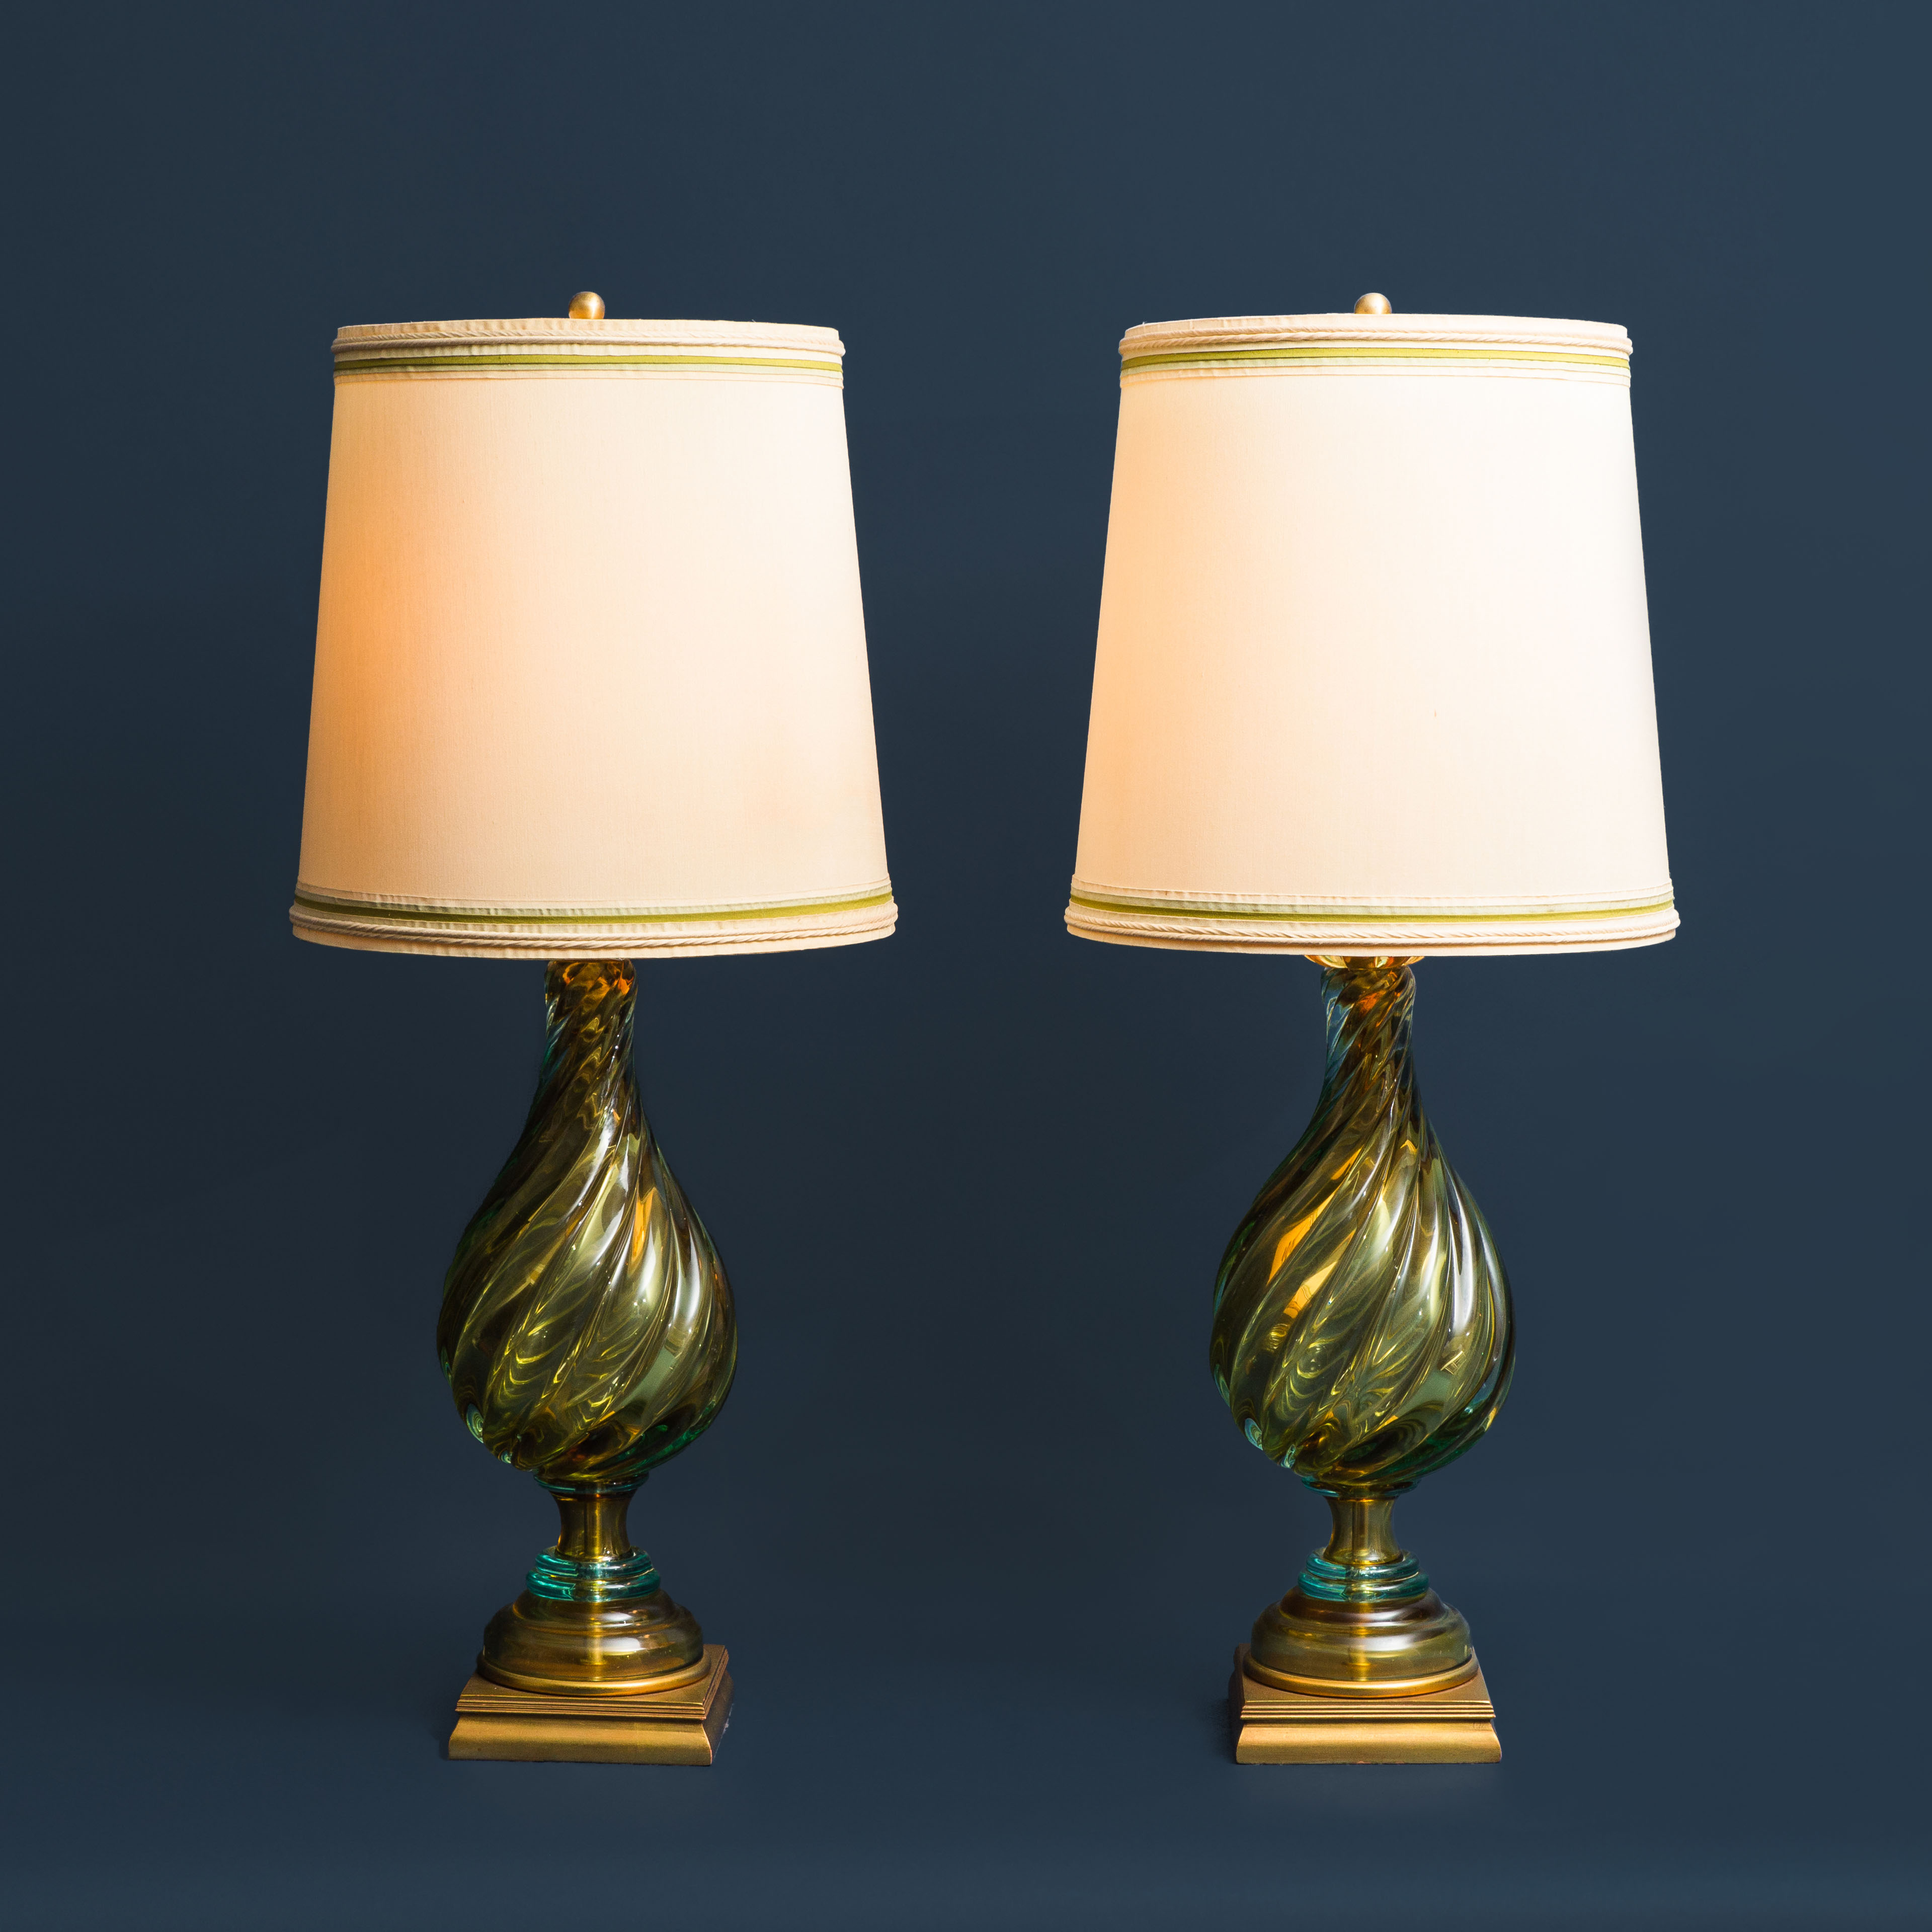 Pair of Table Lamps by Seguso for Marbro   soyun k.